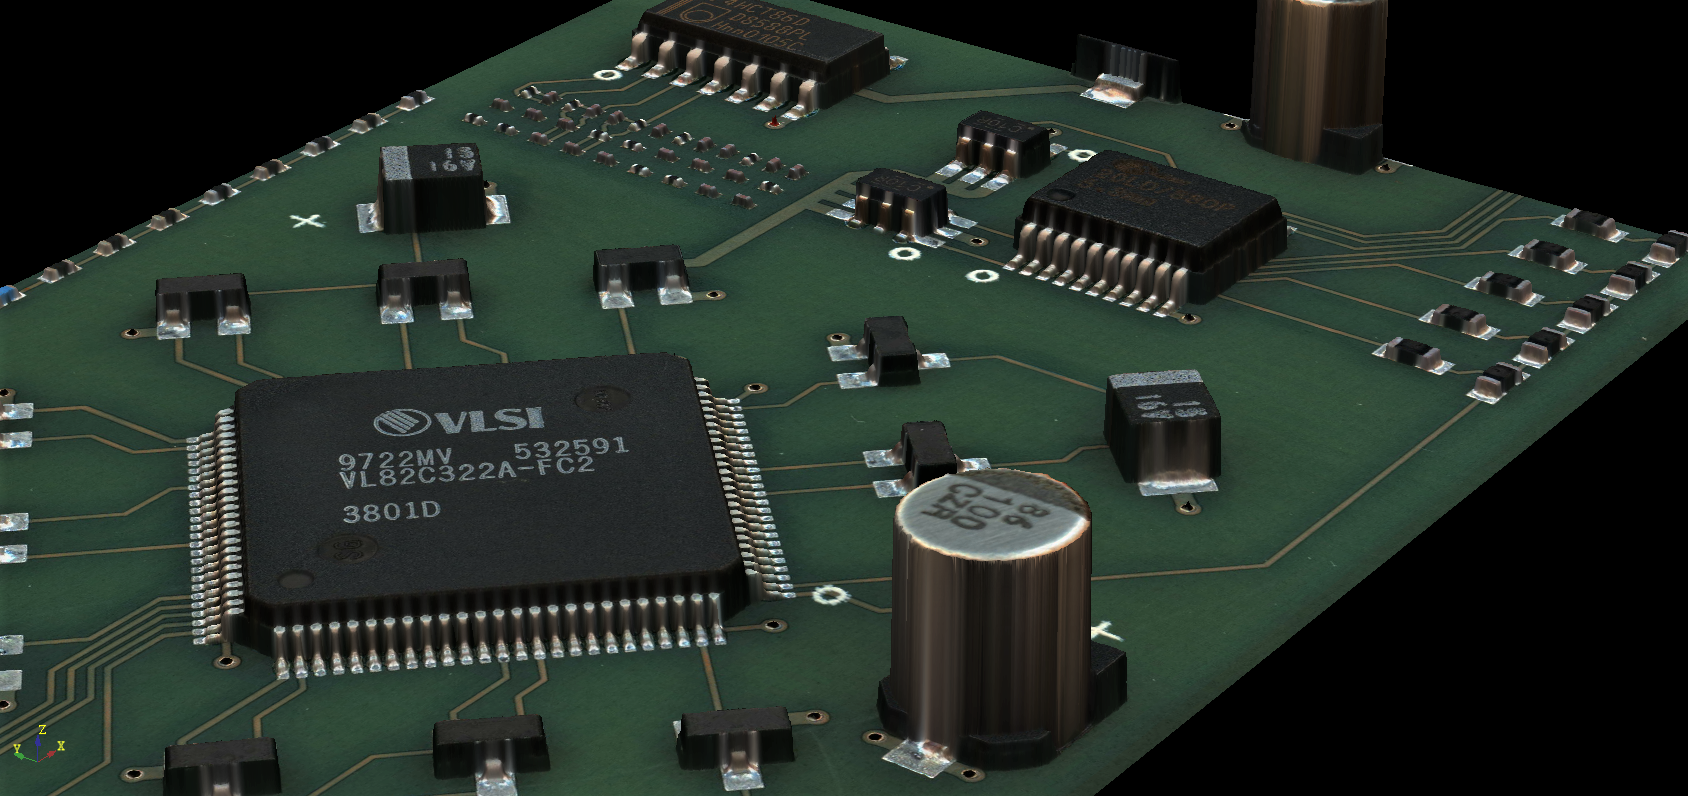 High-resolution 3D images of PCBs